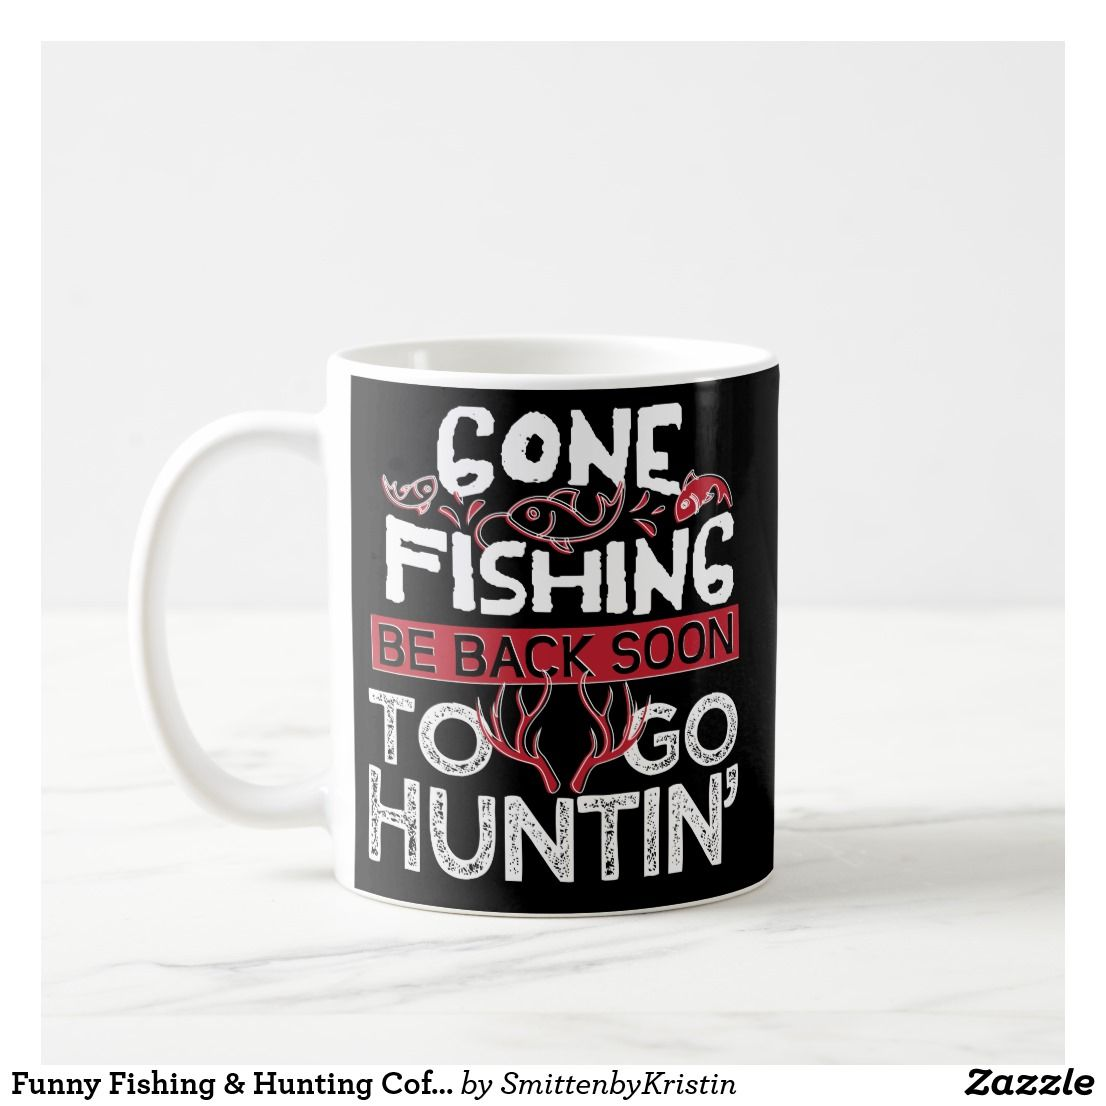 Funny Fishing Hunting Coffee Mug Fathers Day Zazzle Com Personalized Gifts For Dad Gifts For Him Unique Gifts For Men